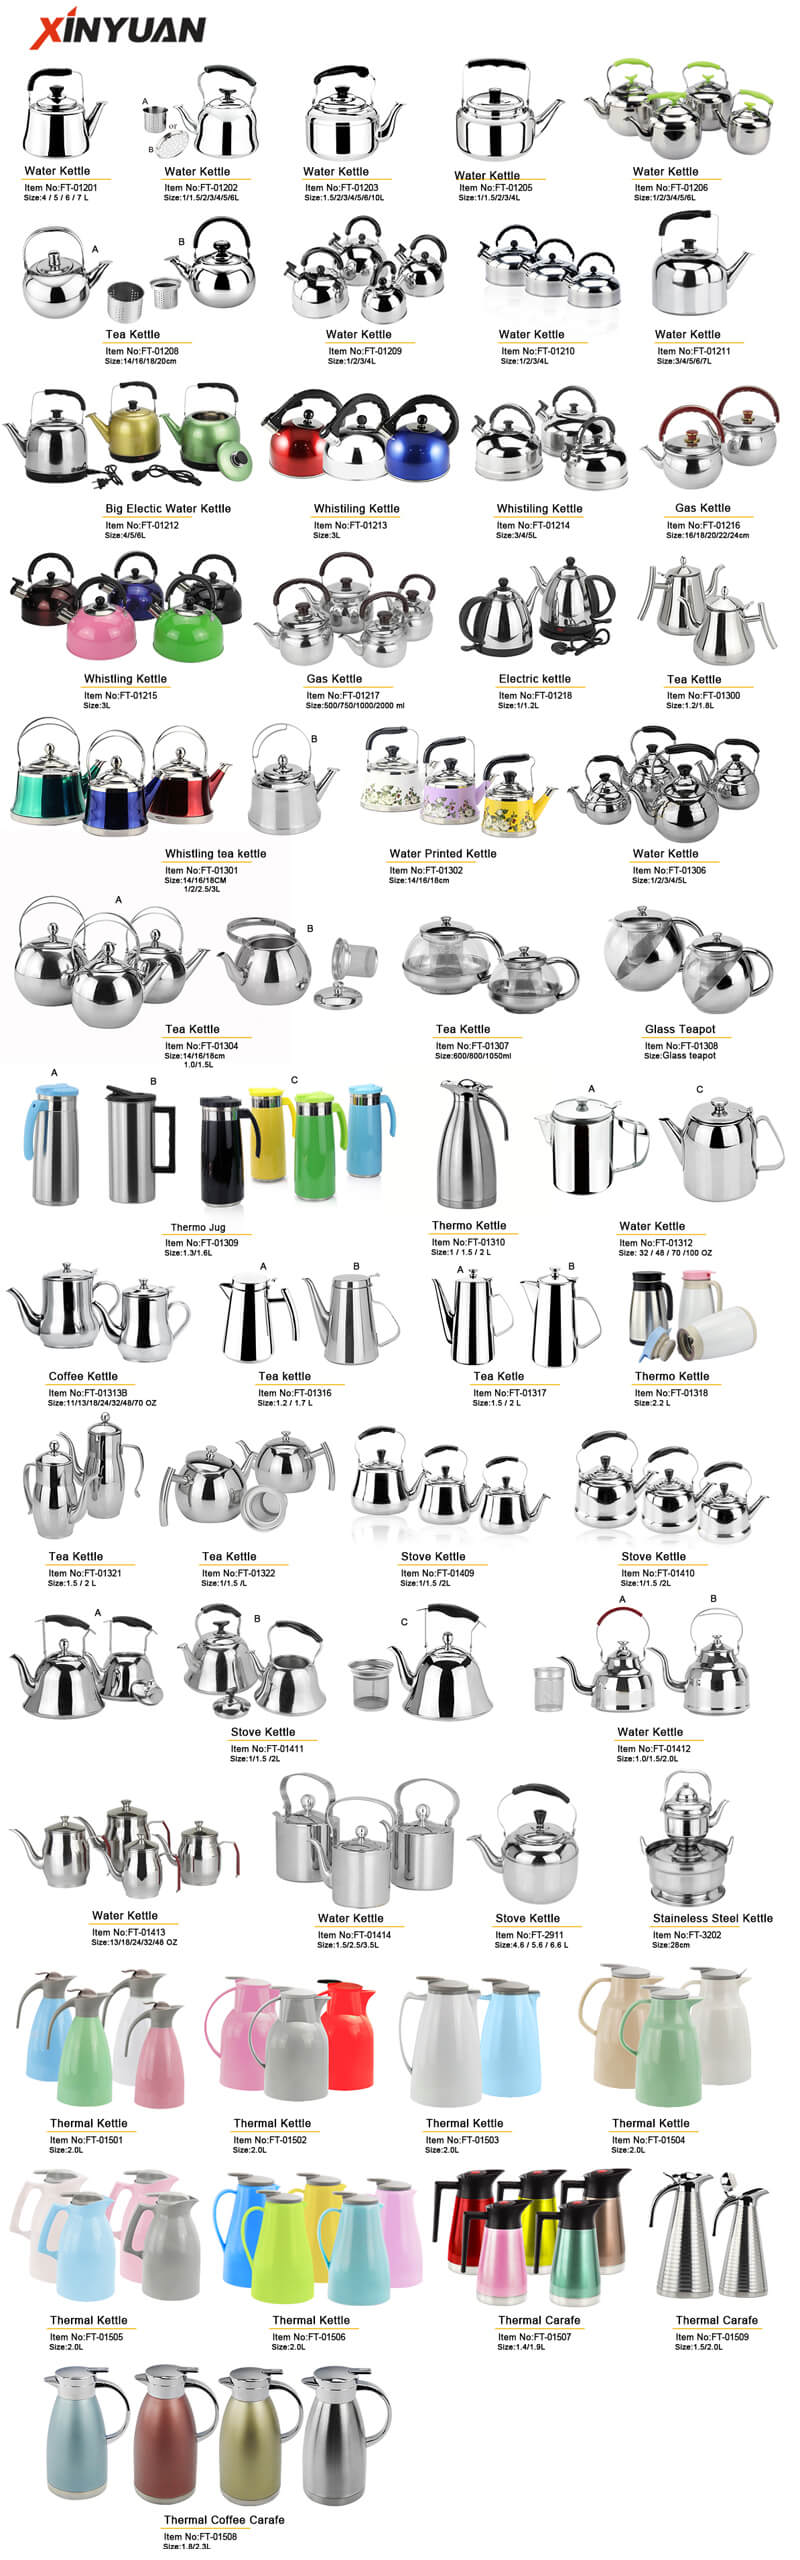 kettle flask stainless steel factory